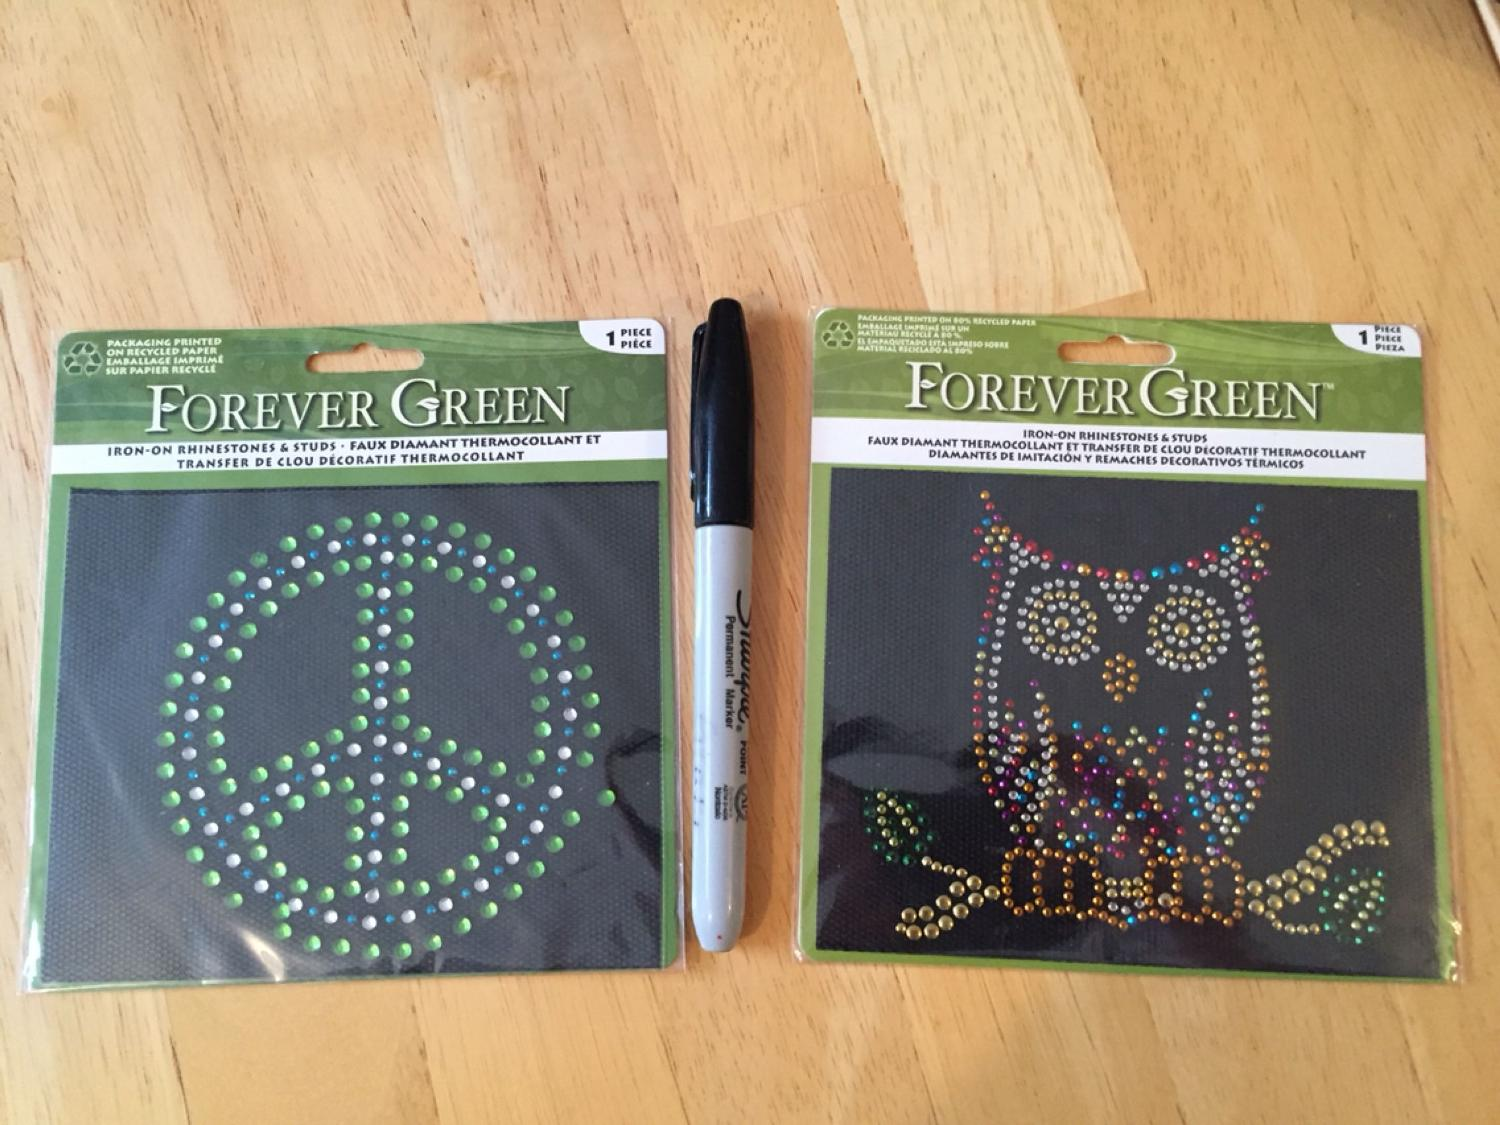 NEW 2 iron on rhinestone & stud transfers - clear backing (the black is  just packaging) - pen for scale - $2 each or both for $3